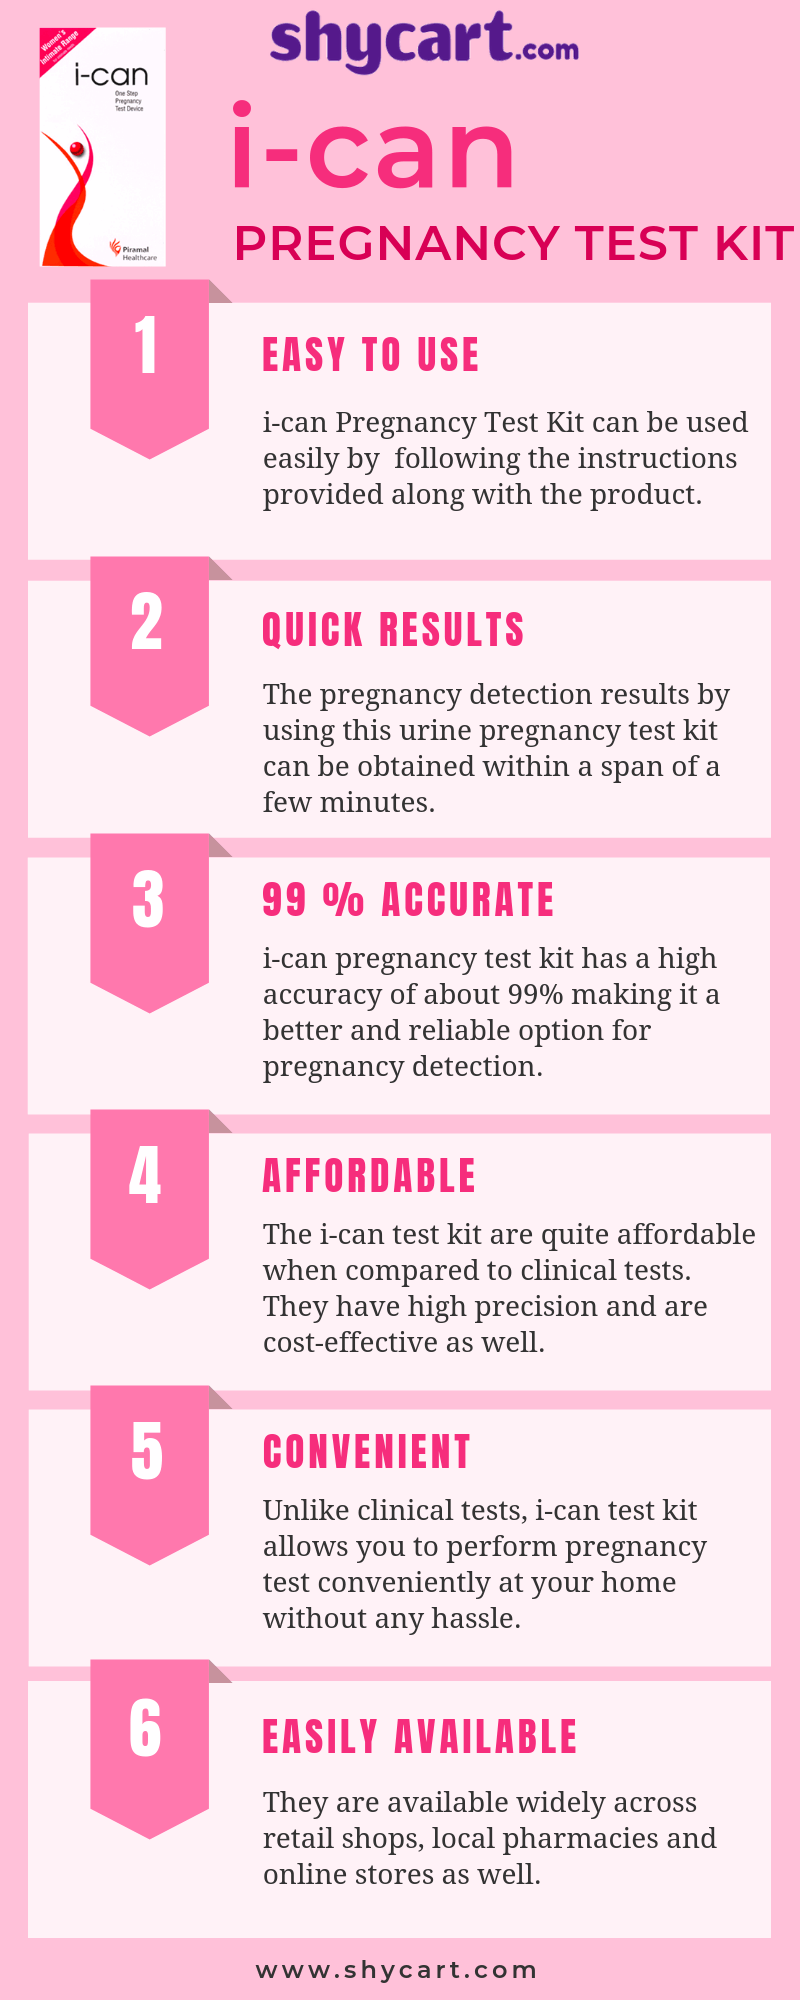 I-can pregnancy test kit - Infographics